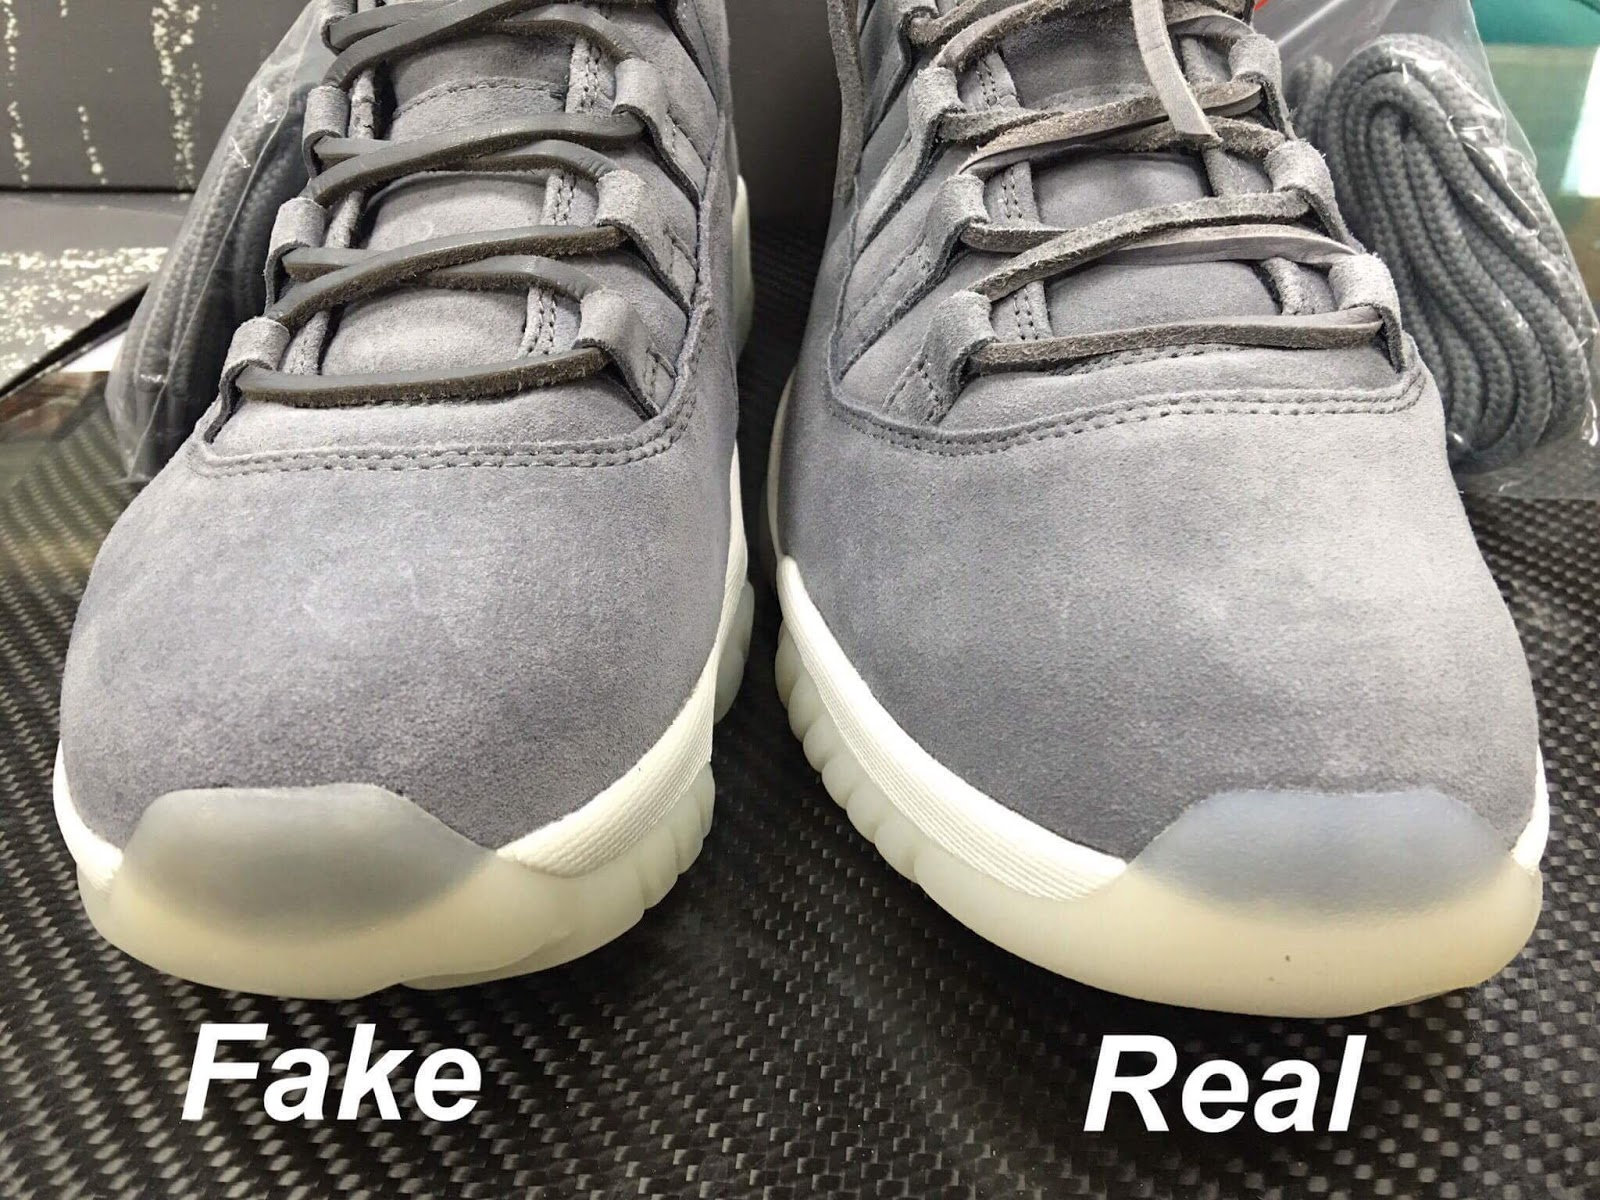 new style d3d81 67f61 Sean's Blog: Real vs Fake AIR JORDAN 11 RETRO PREM